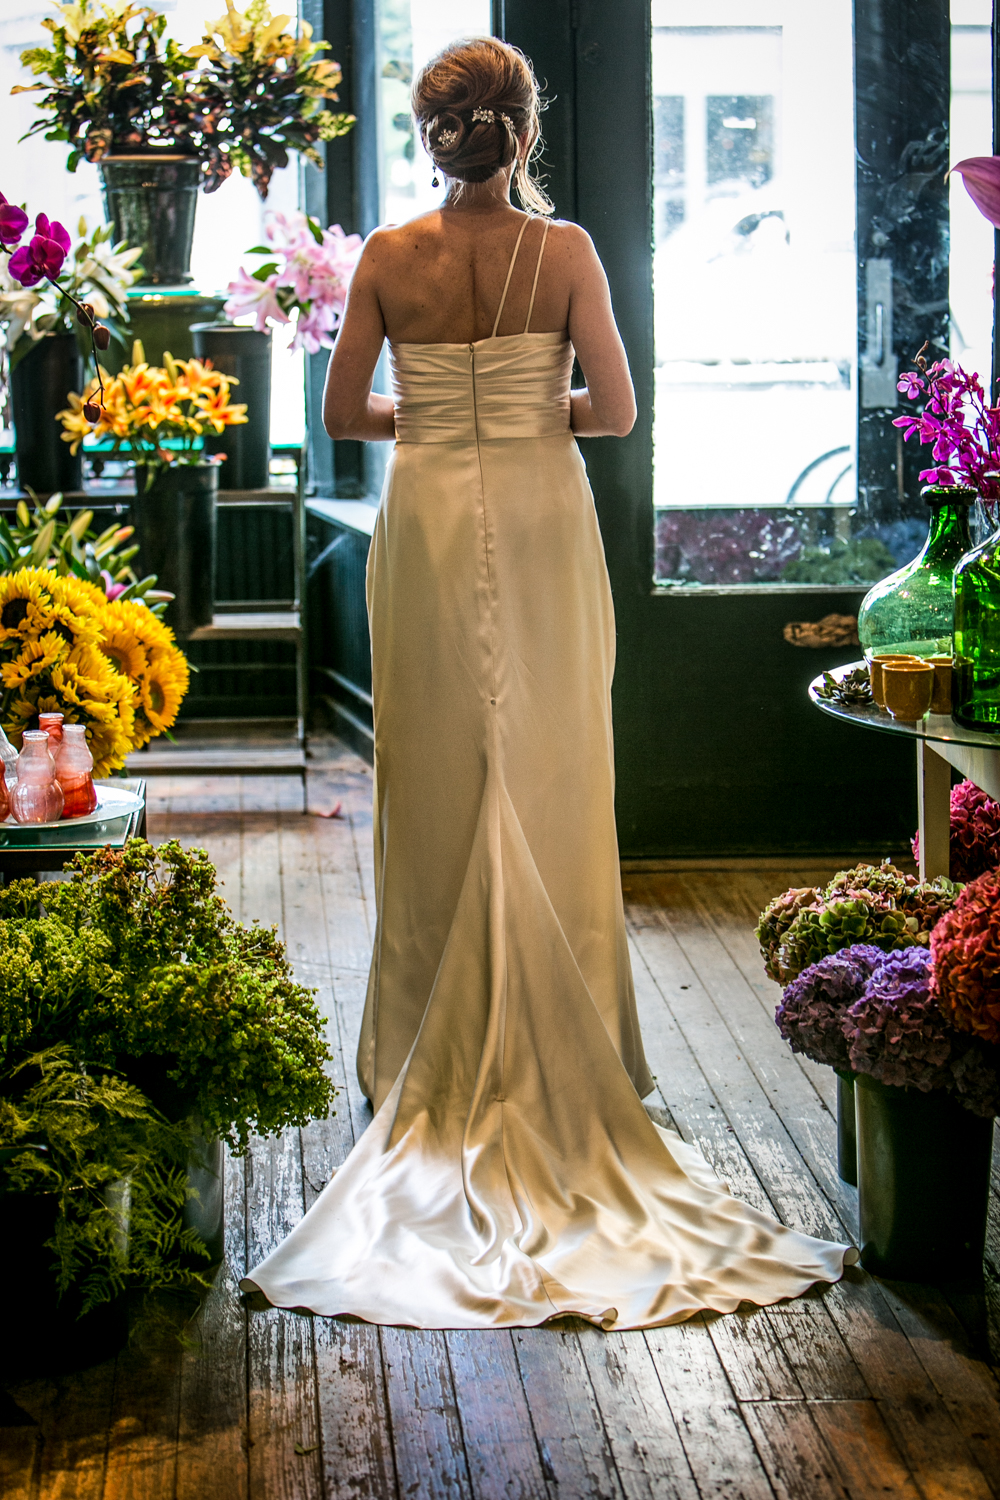 I always try to capture the bride walking away...the way a gown falls on a bride is beautiful and elegant.